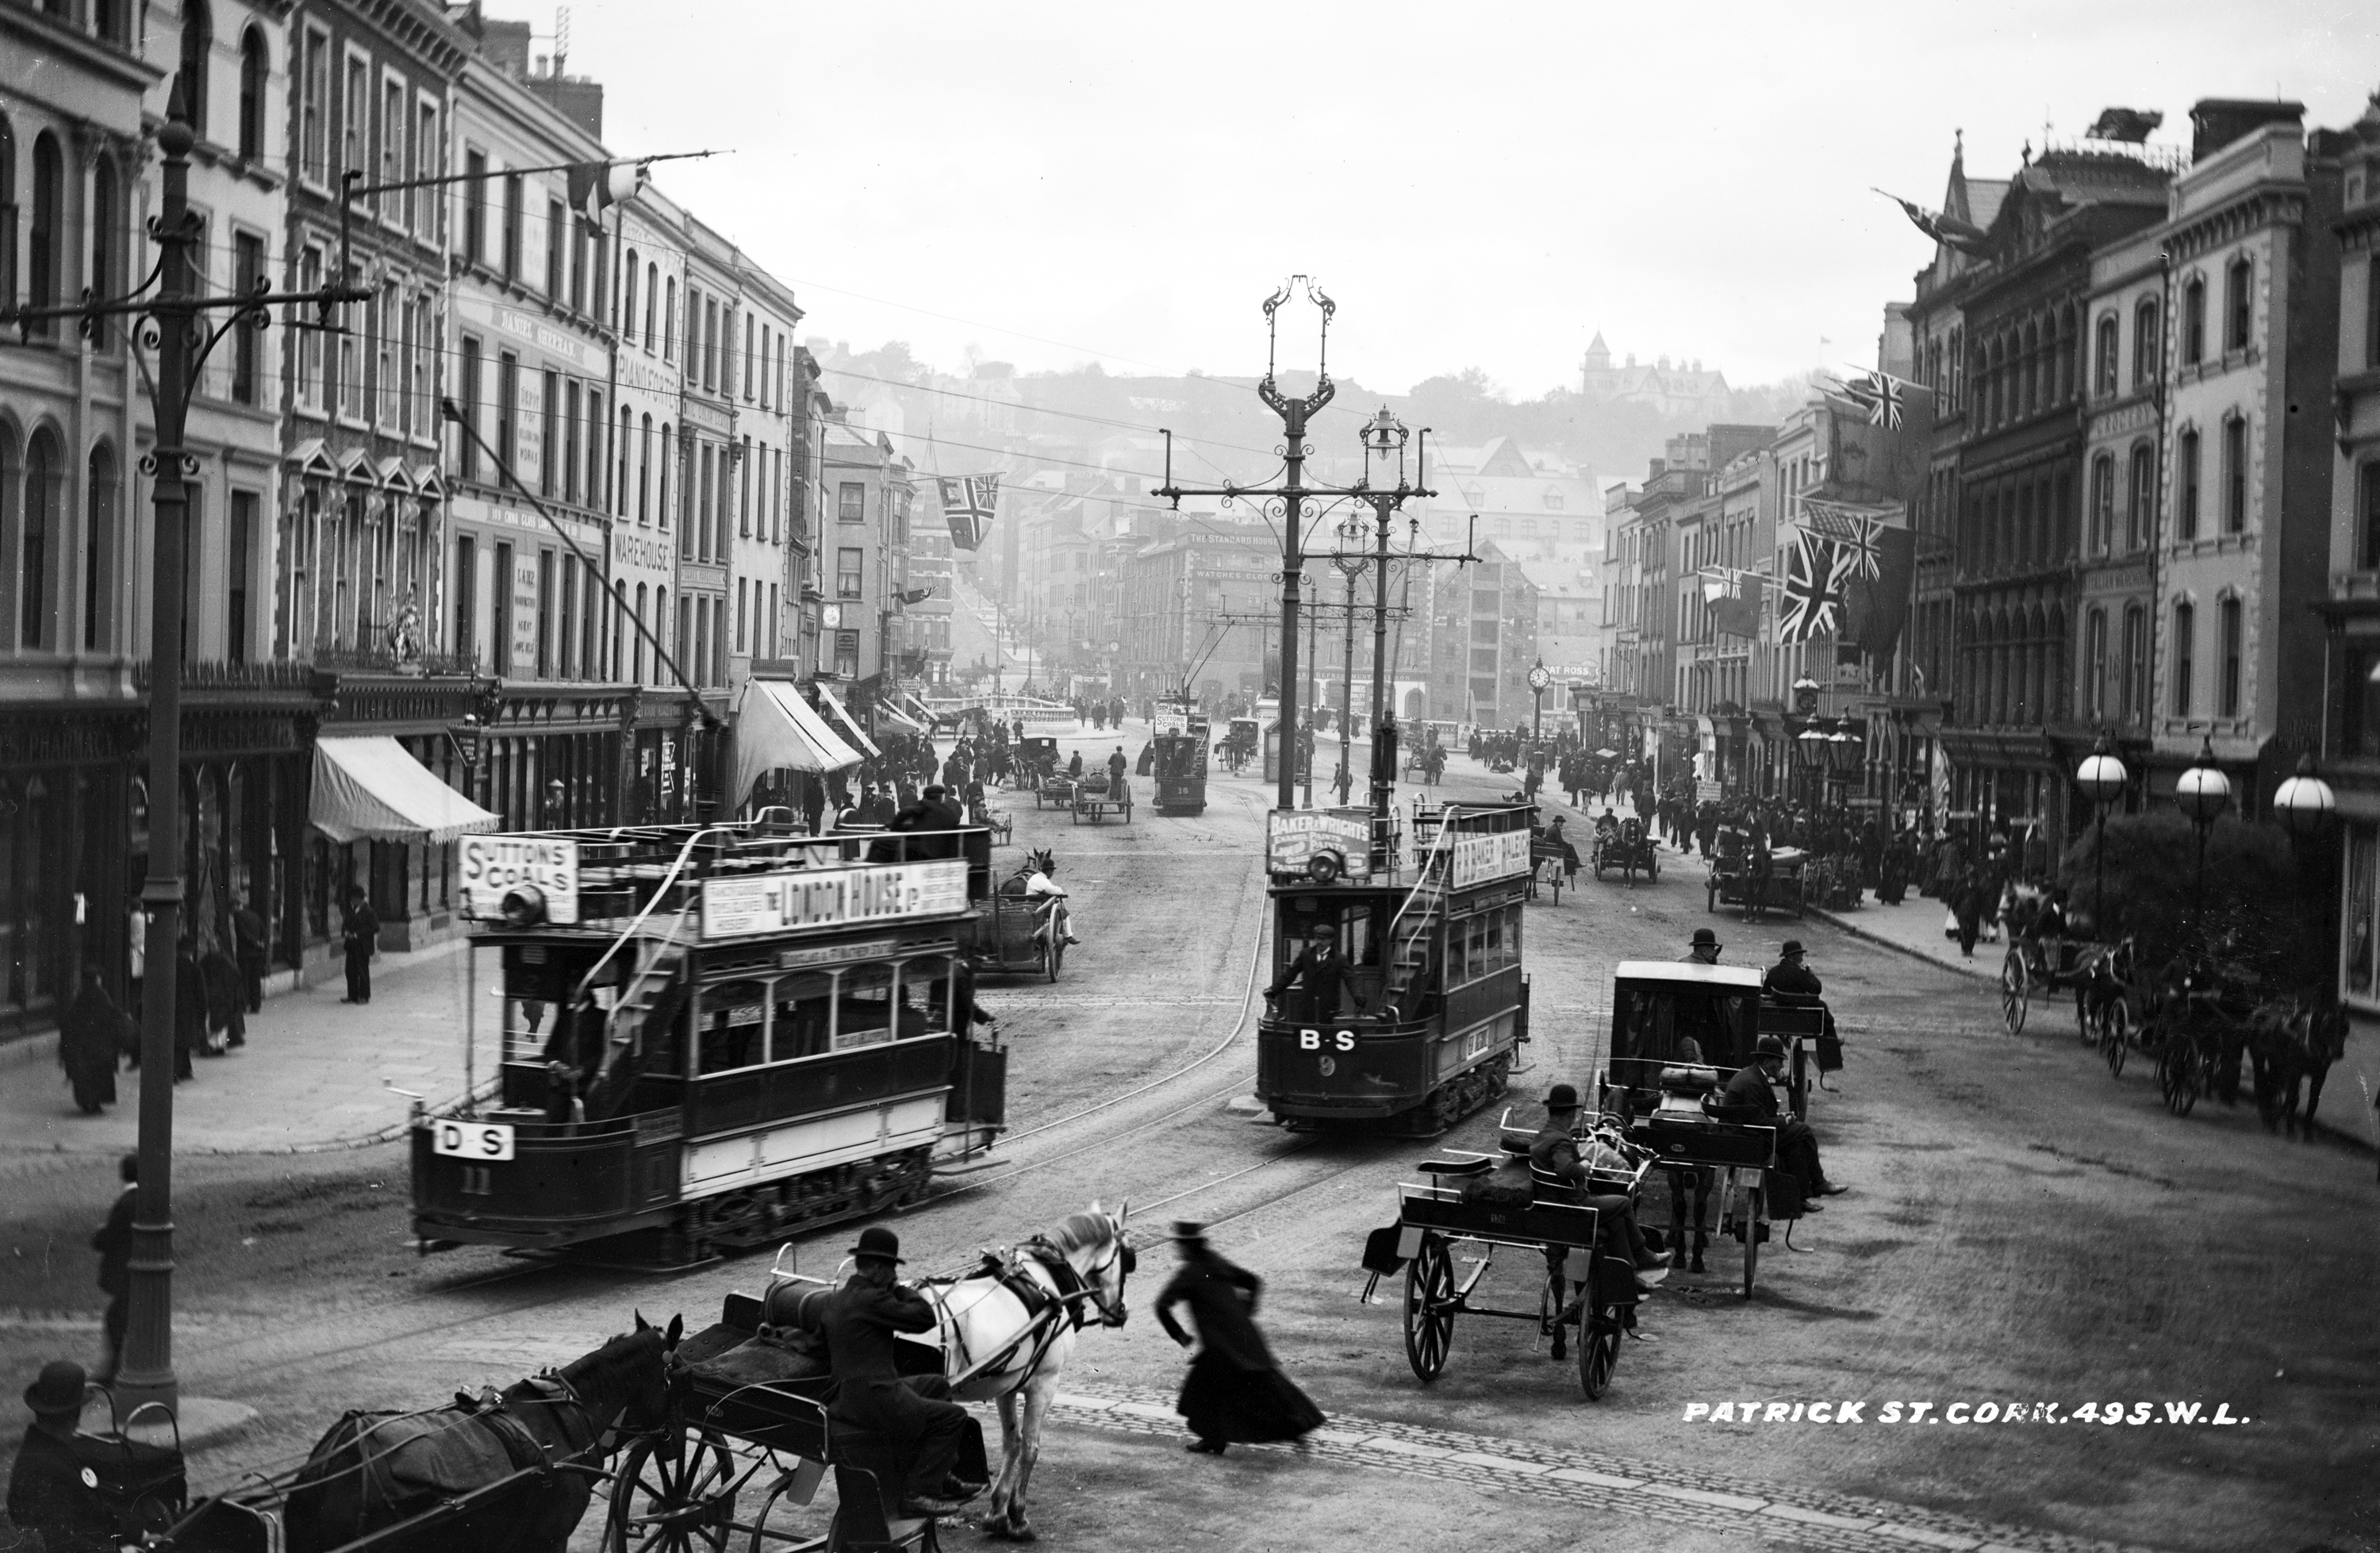 Old photo of trams on Patrick Street, Co. Cork, Ireland